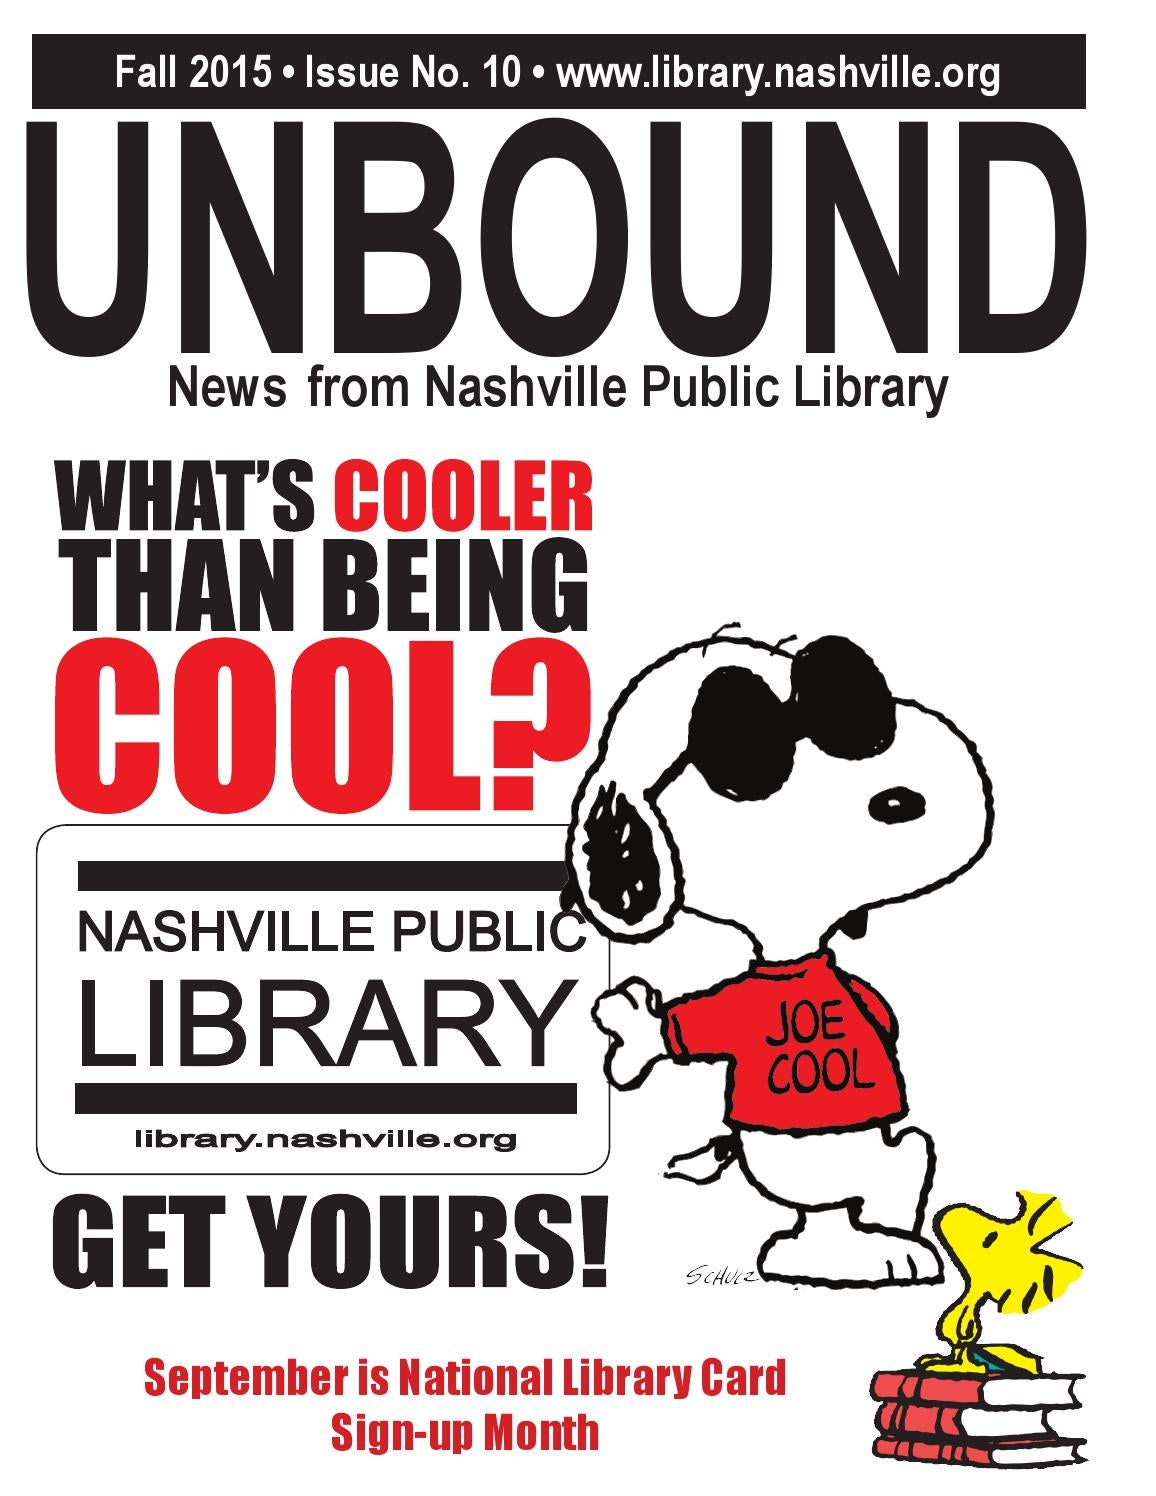 Unbound Fall 2015 By Nashville Public Library Issuu Logic Circuit Of Copy Machine Digital Electronics Life Learns Us